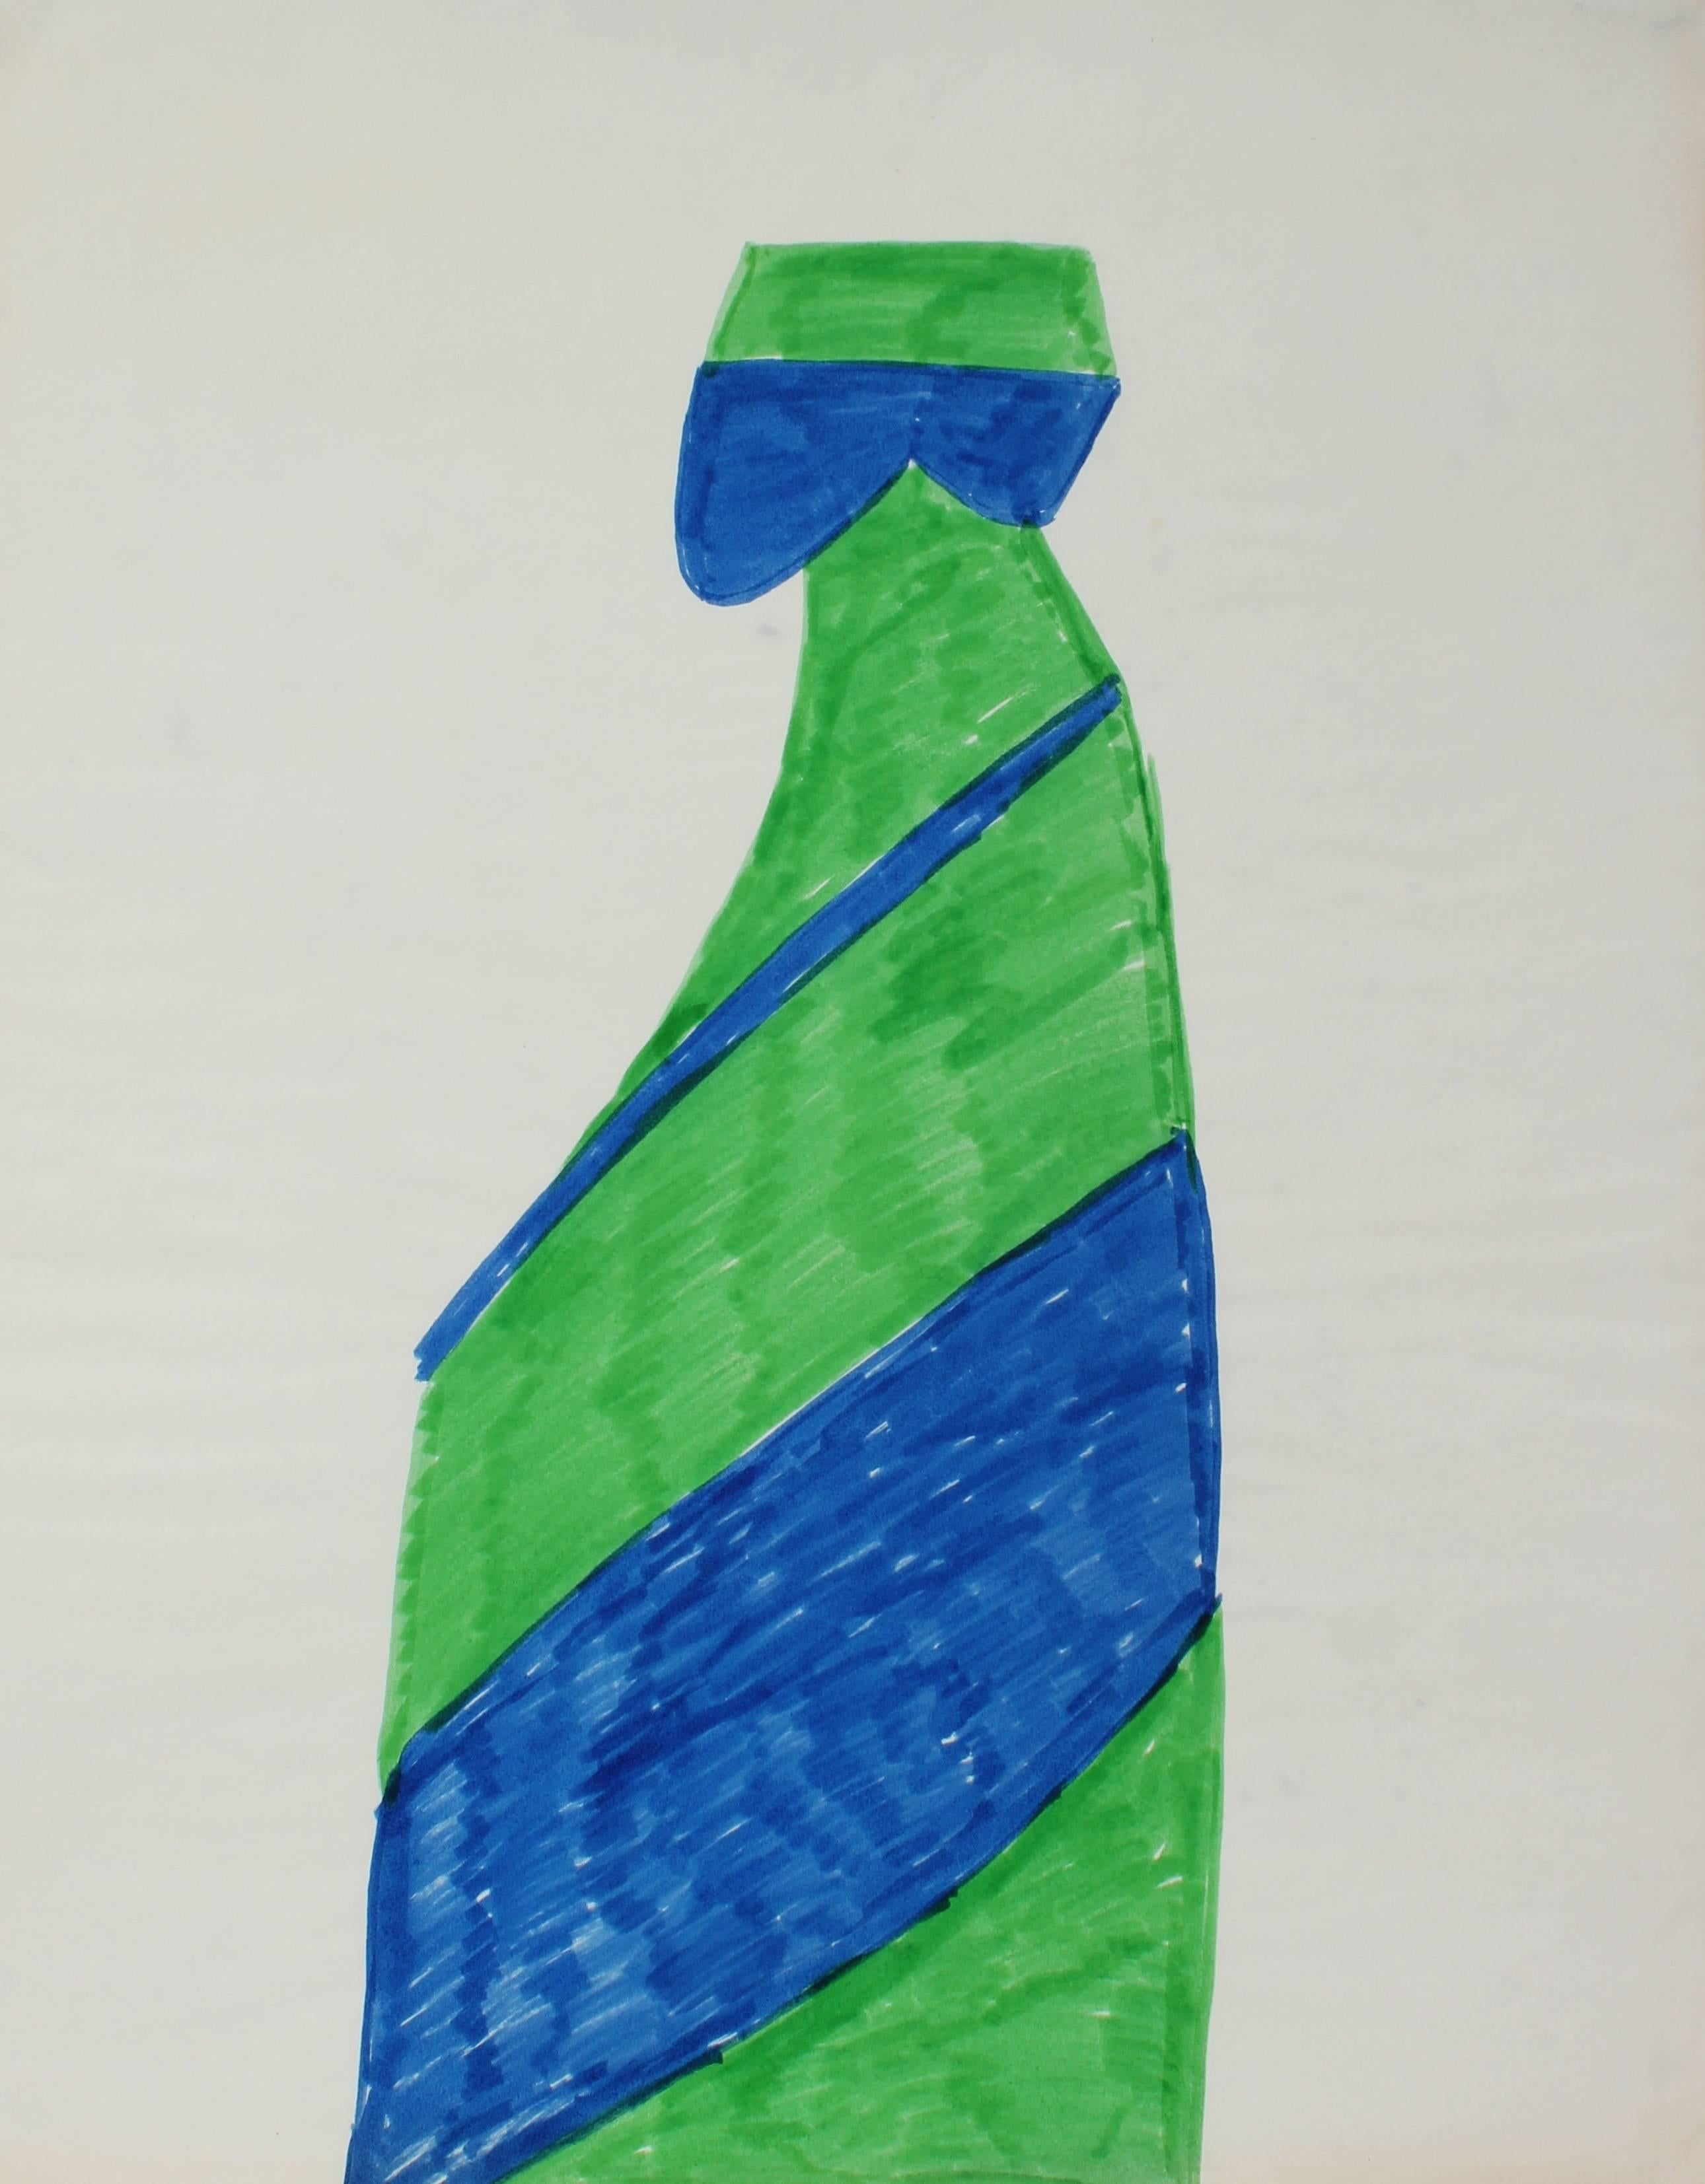 Figurative and Geometric Abstract in Blue and Green, Circa 1970